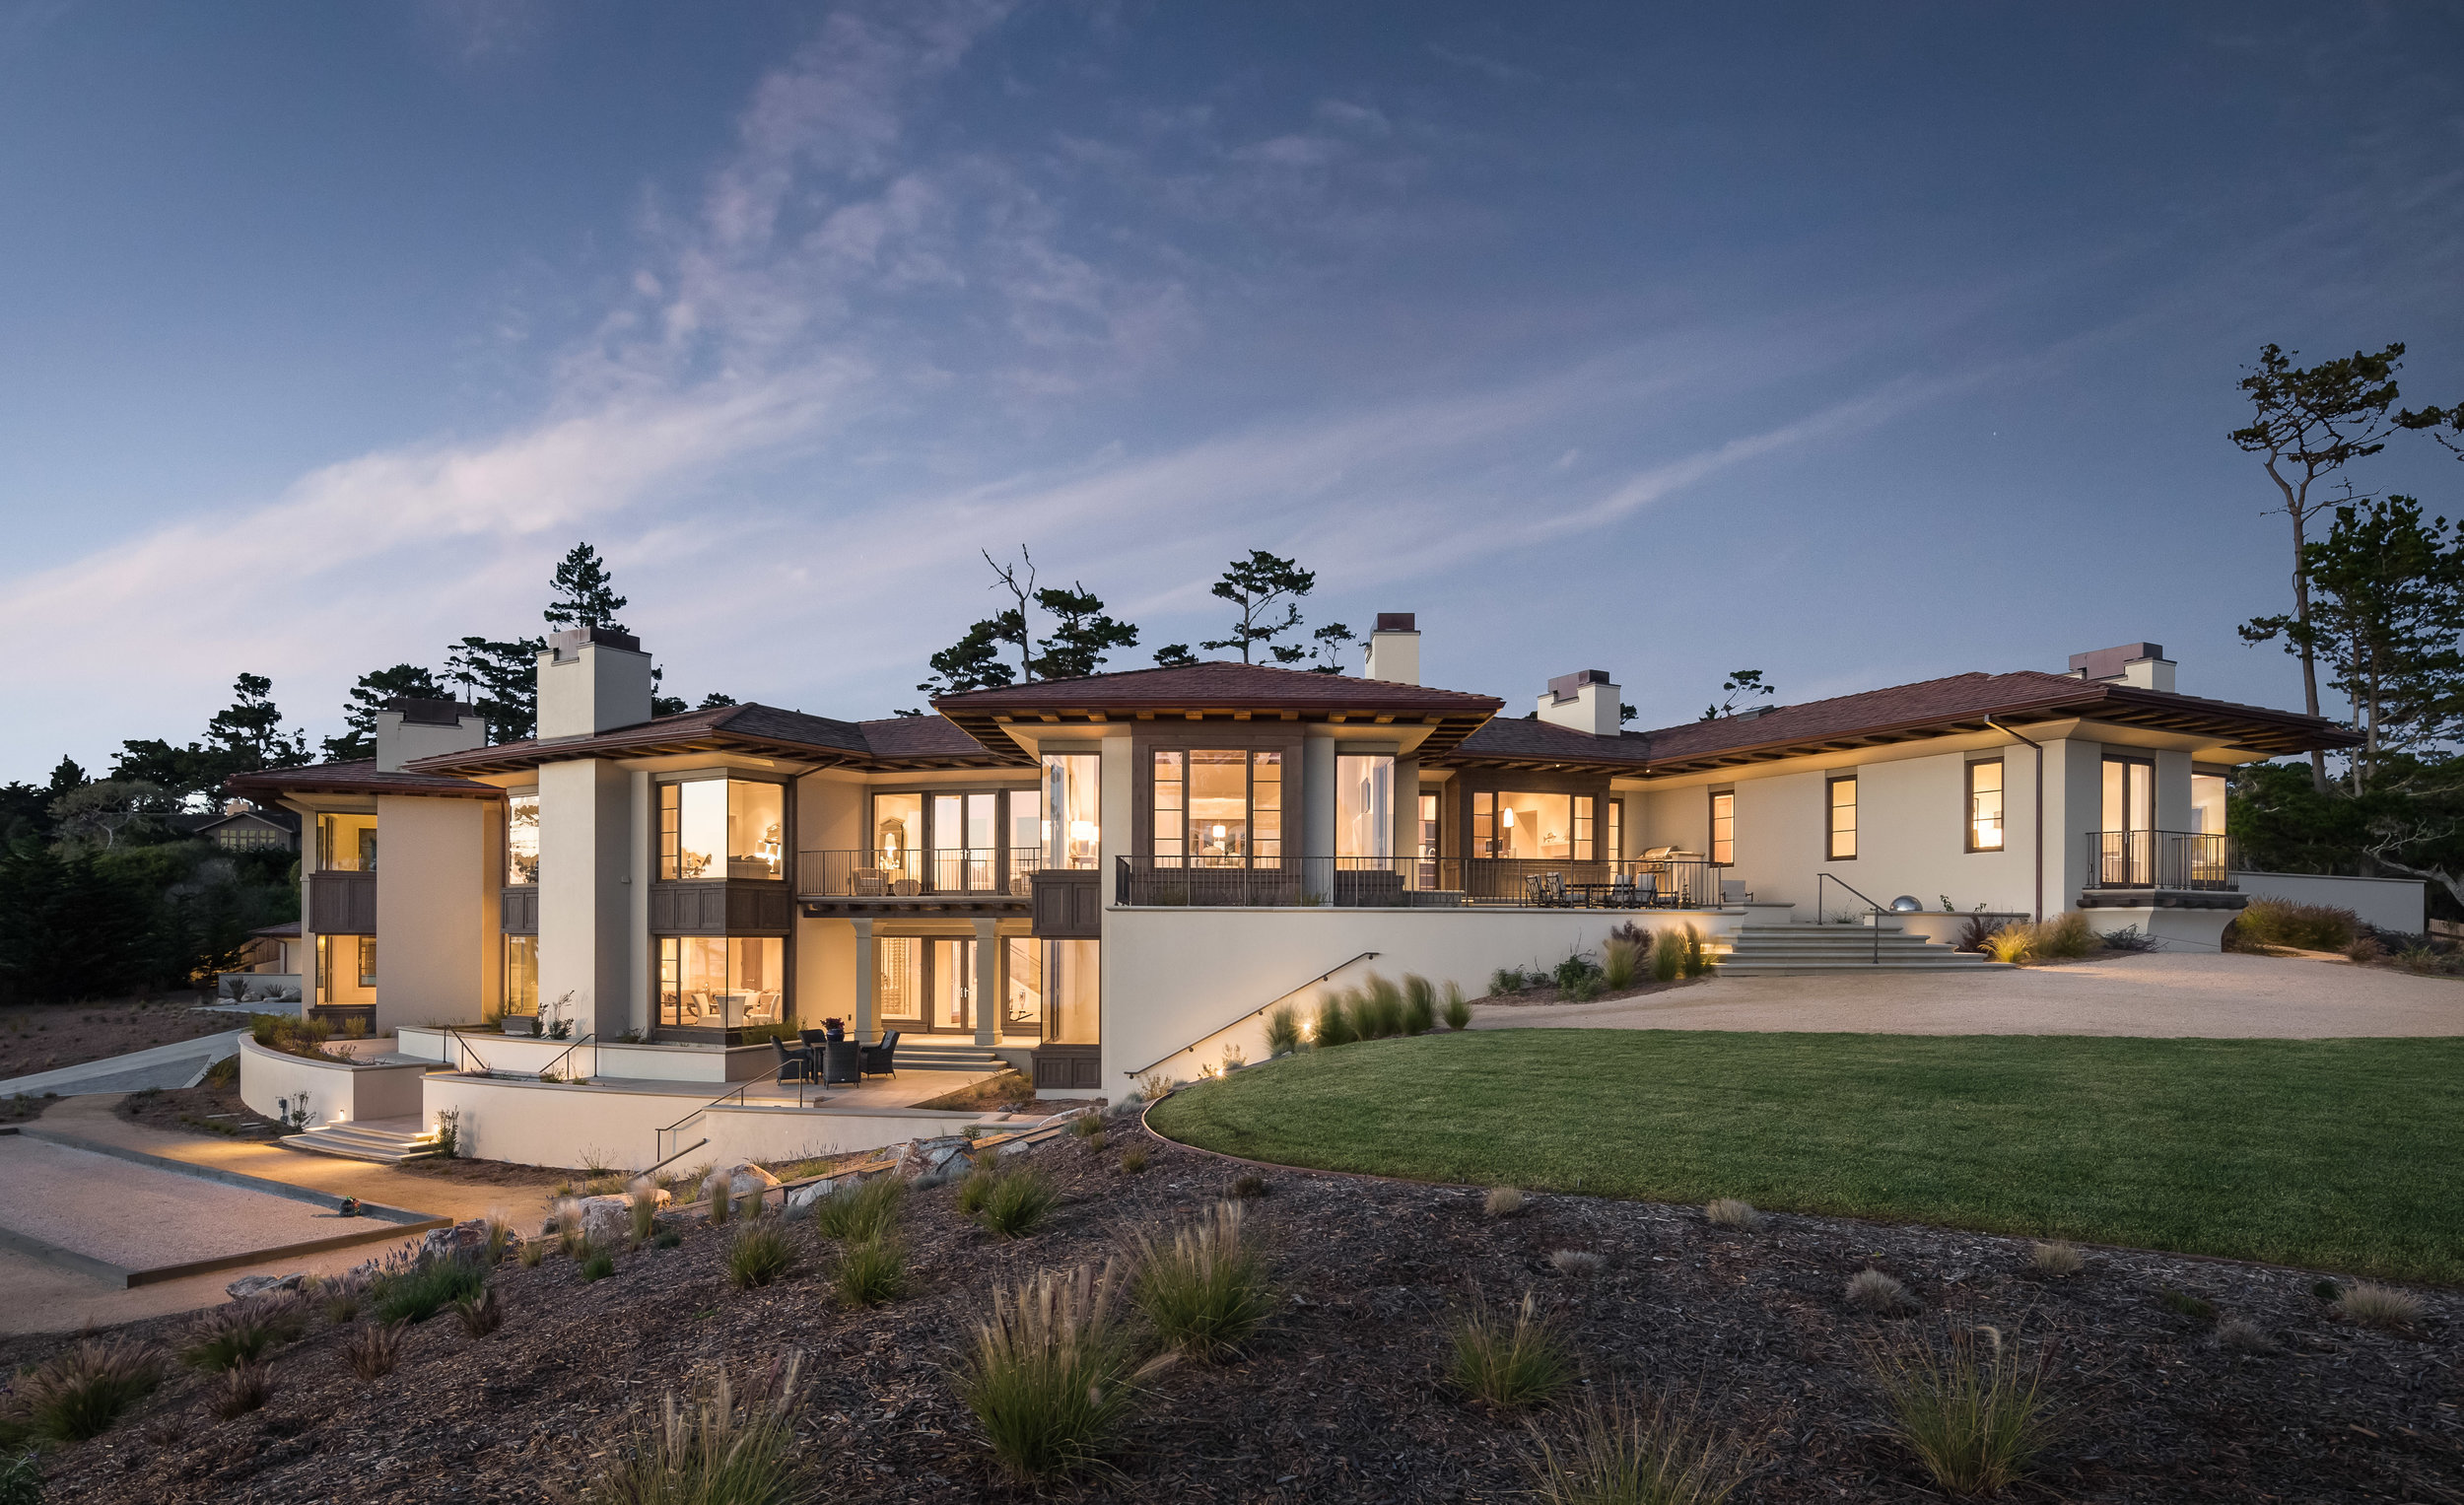 Pebble Beach Residence -  The Wall Street Journal